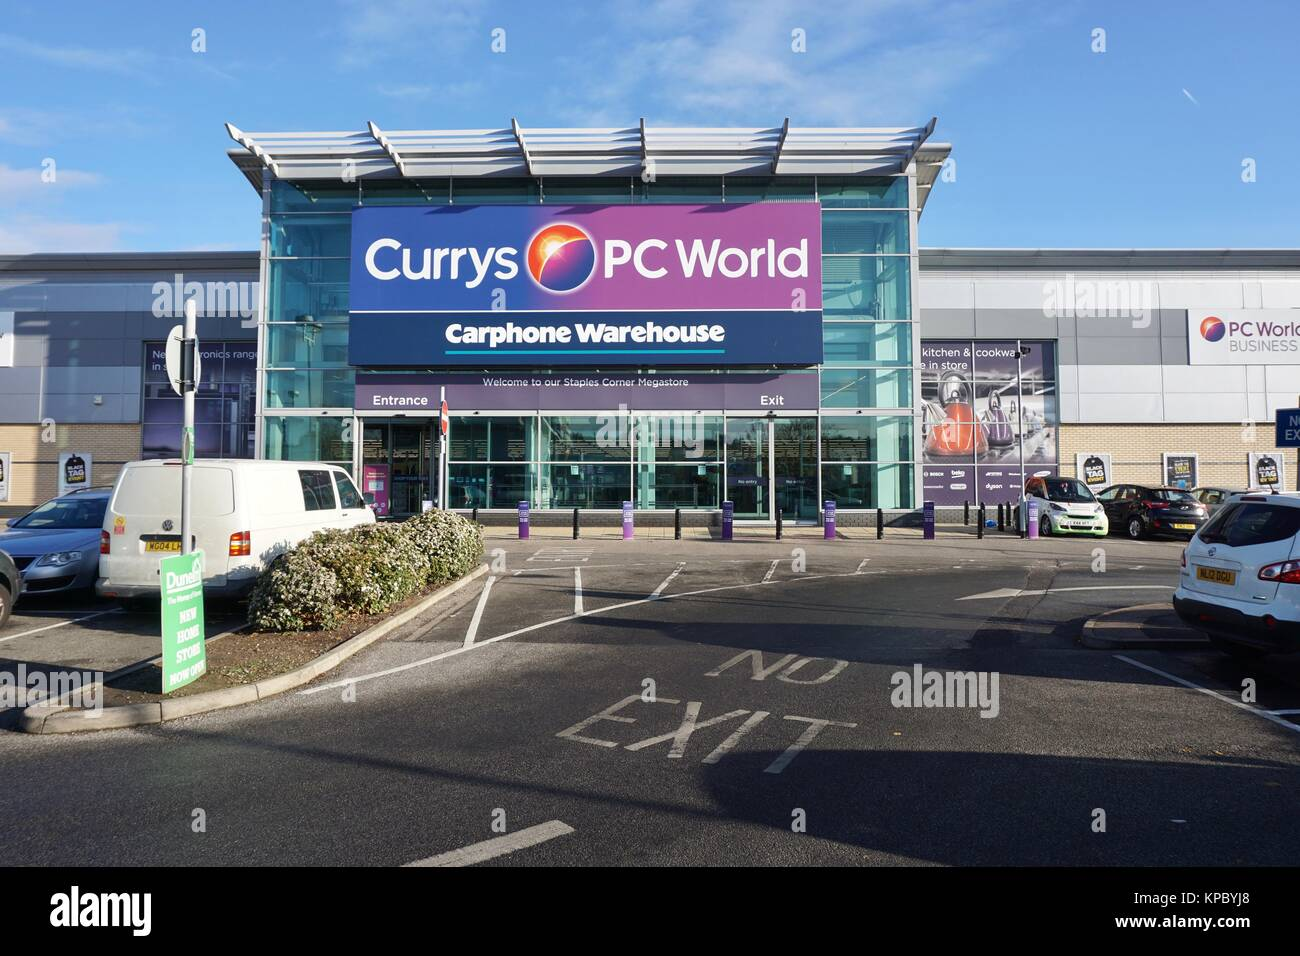 Staples store in uk stock photos staples store in uk stock images alamy - Staples corner storage ...